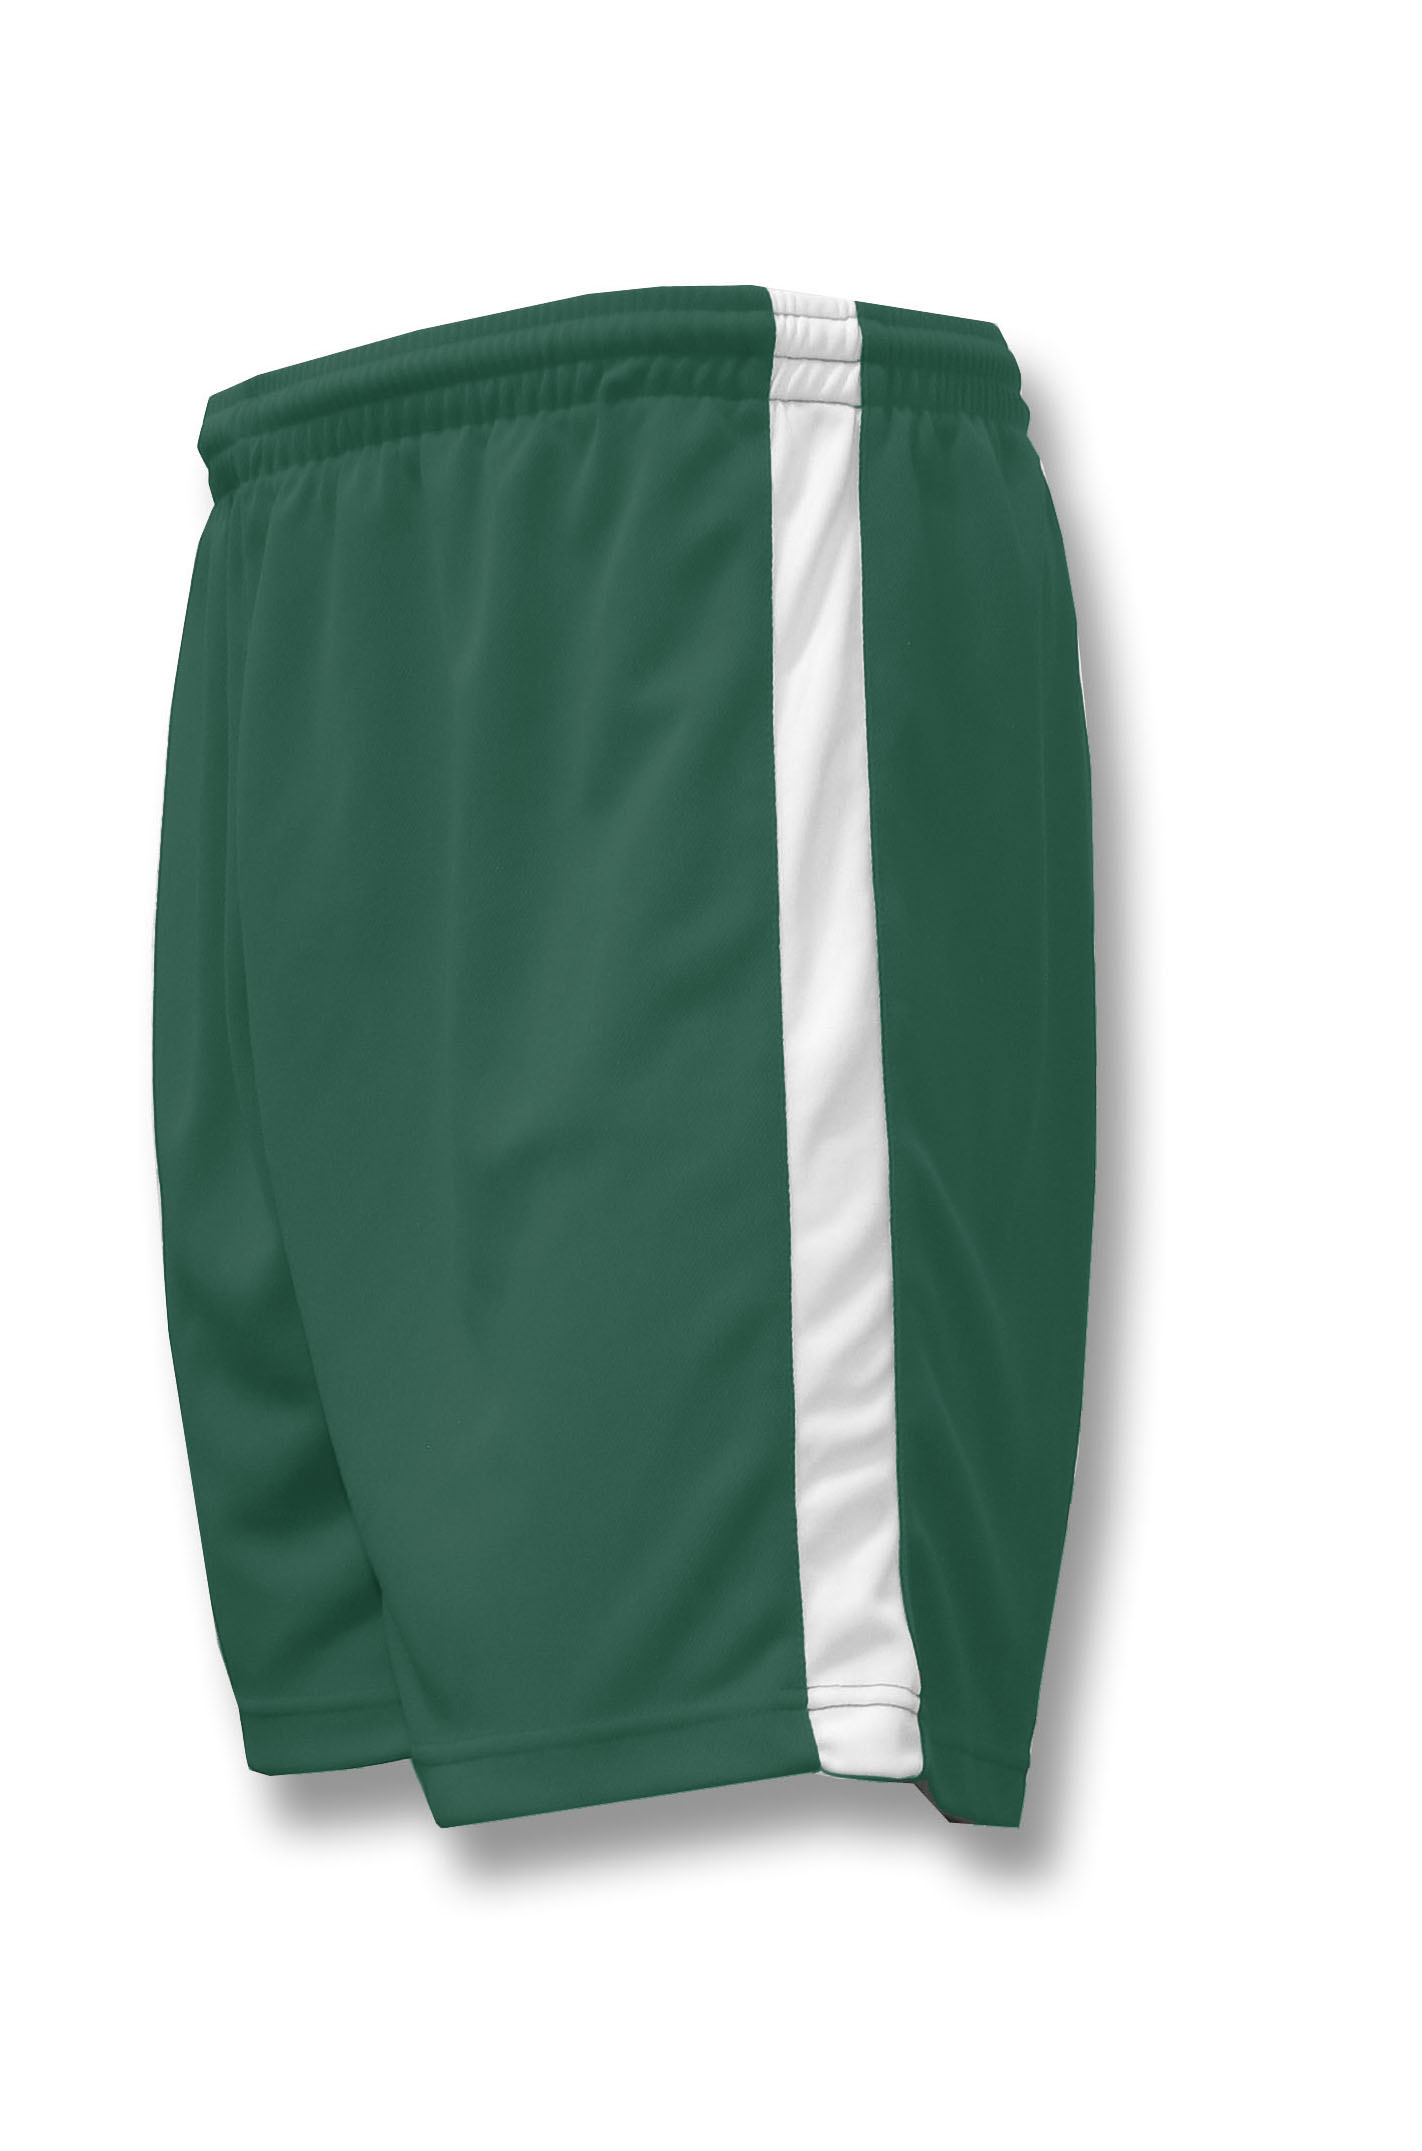 Sweeper / Cobra soccer shorts in forest by Code Four Athletics